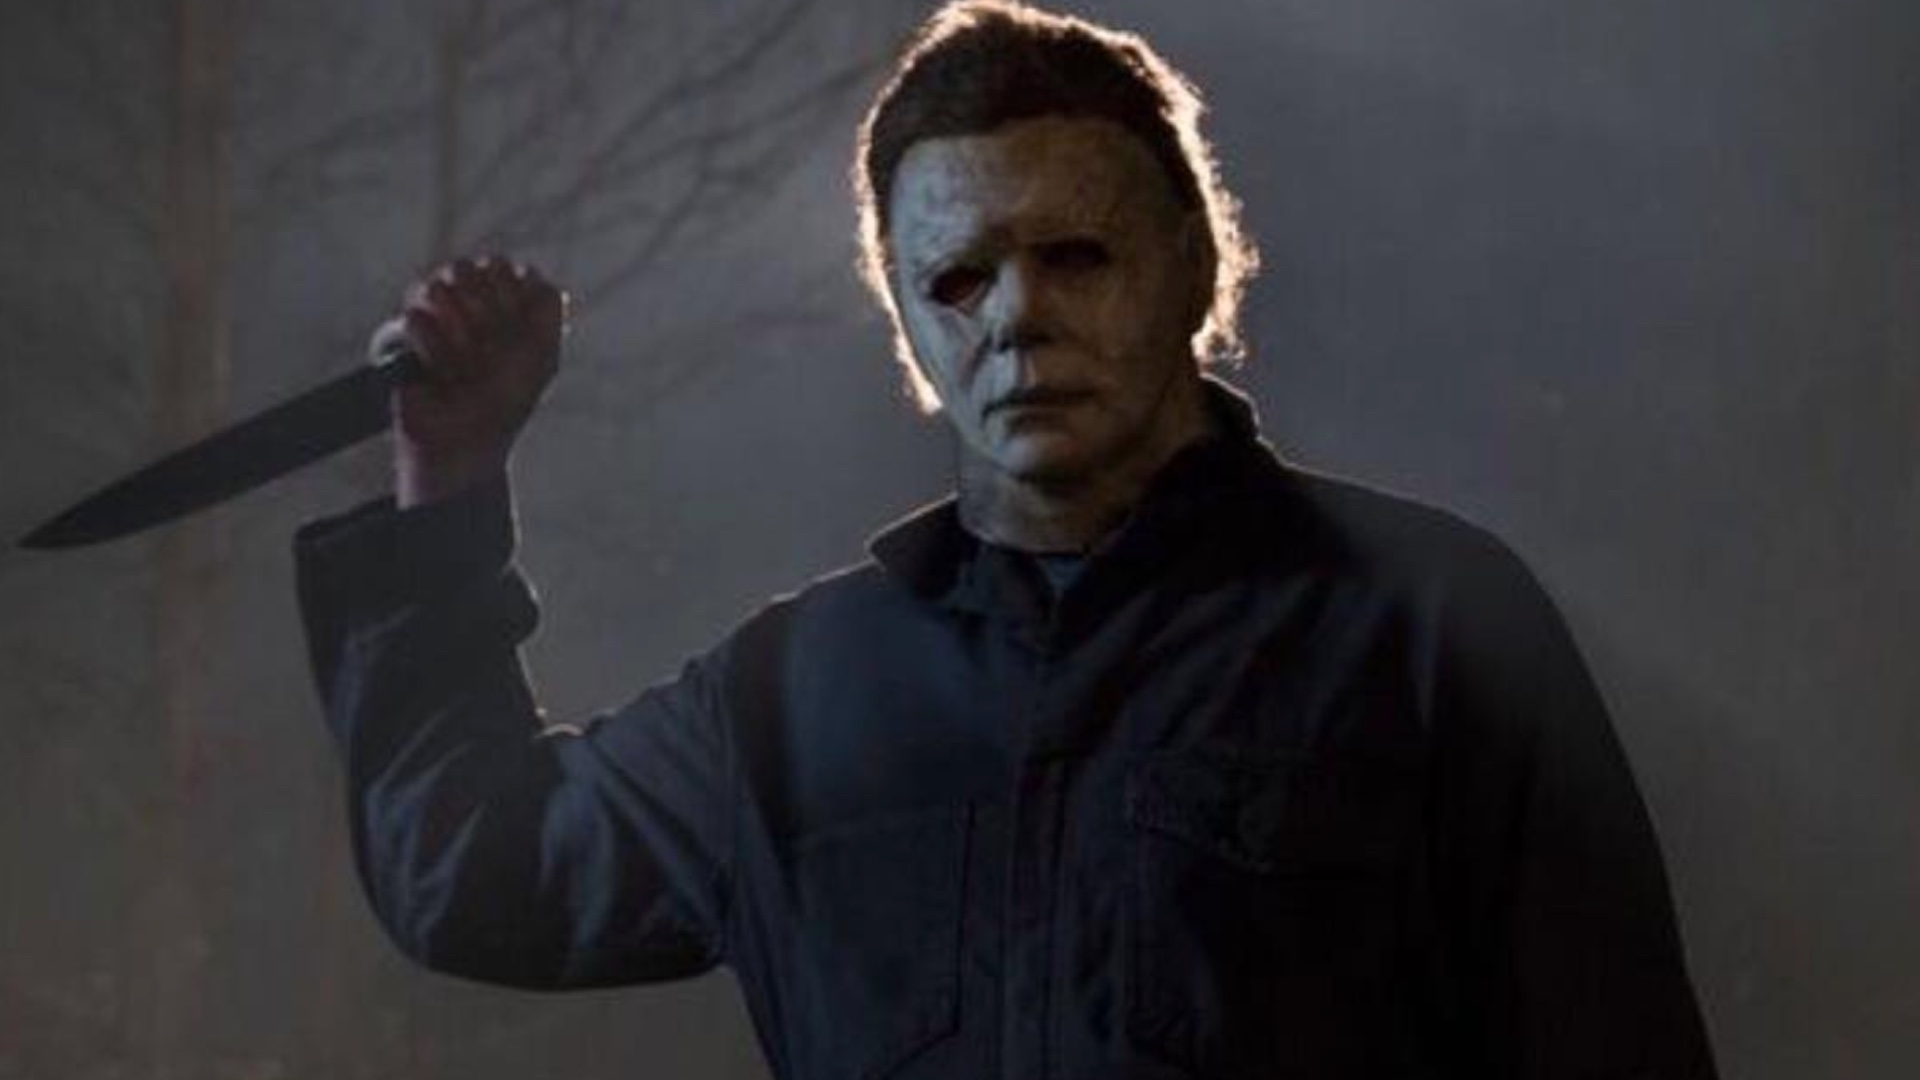 two-new-teaser-trailers-for-halloween-show-us-our-very-first-footage-social.jpg